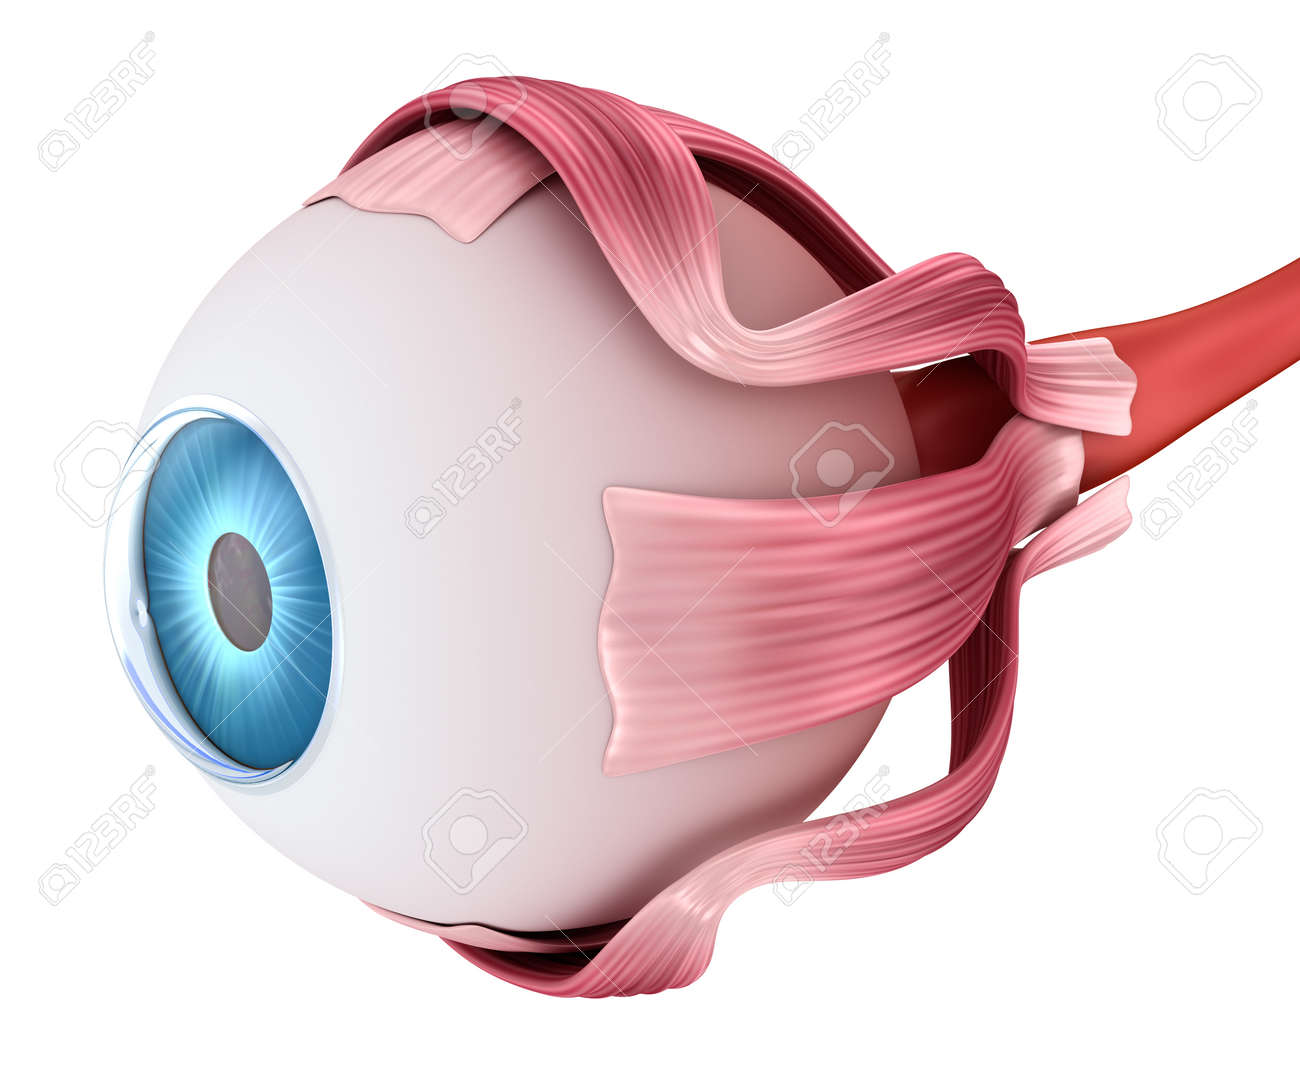 Eye Anatomy - Inner Structure, Medically Accurate 3D Illustration ...